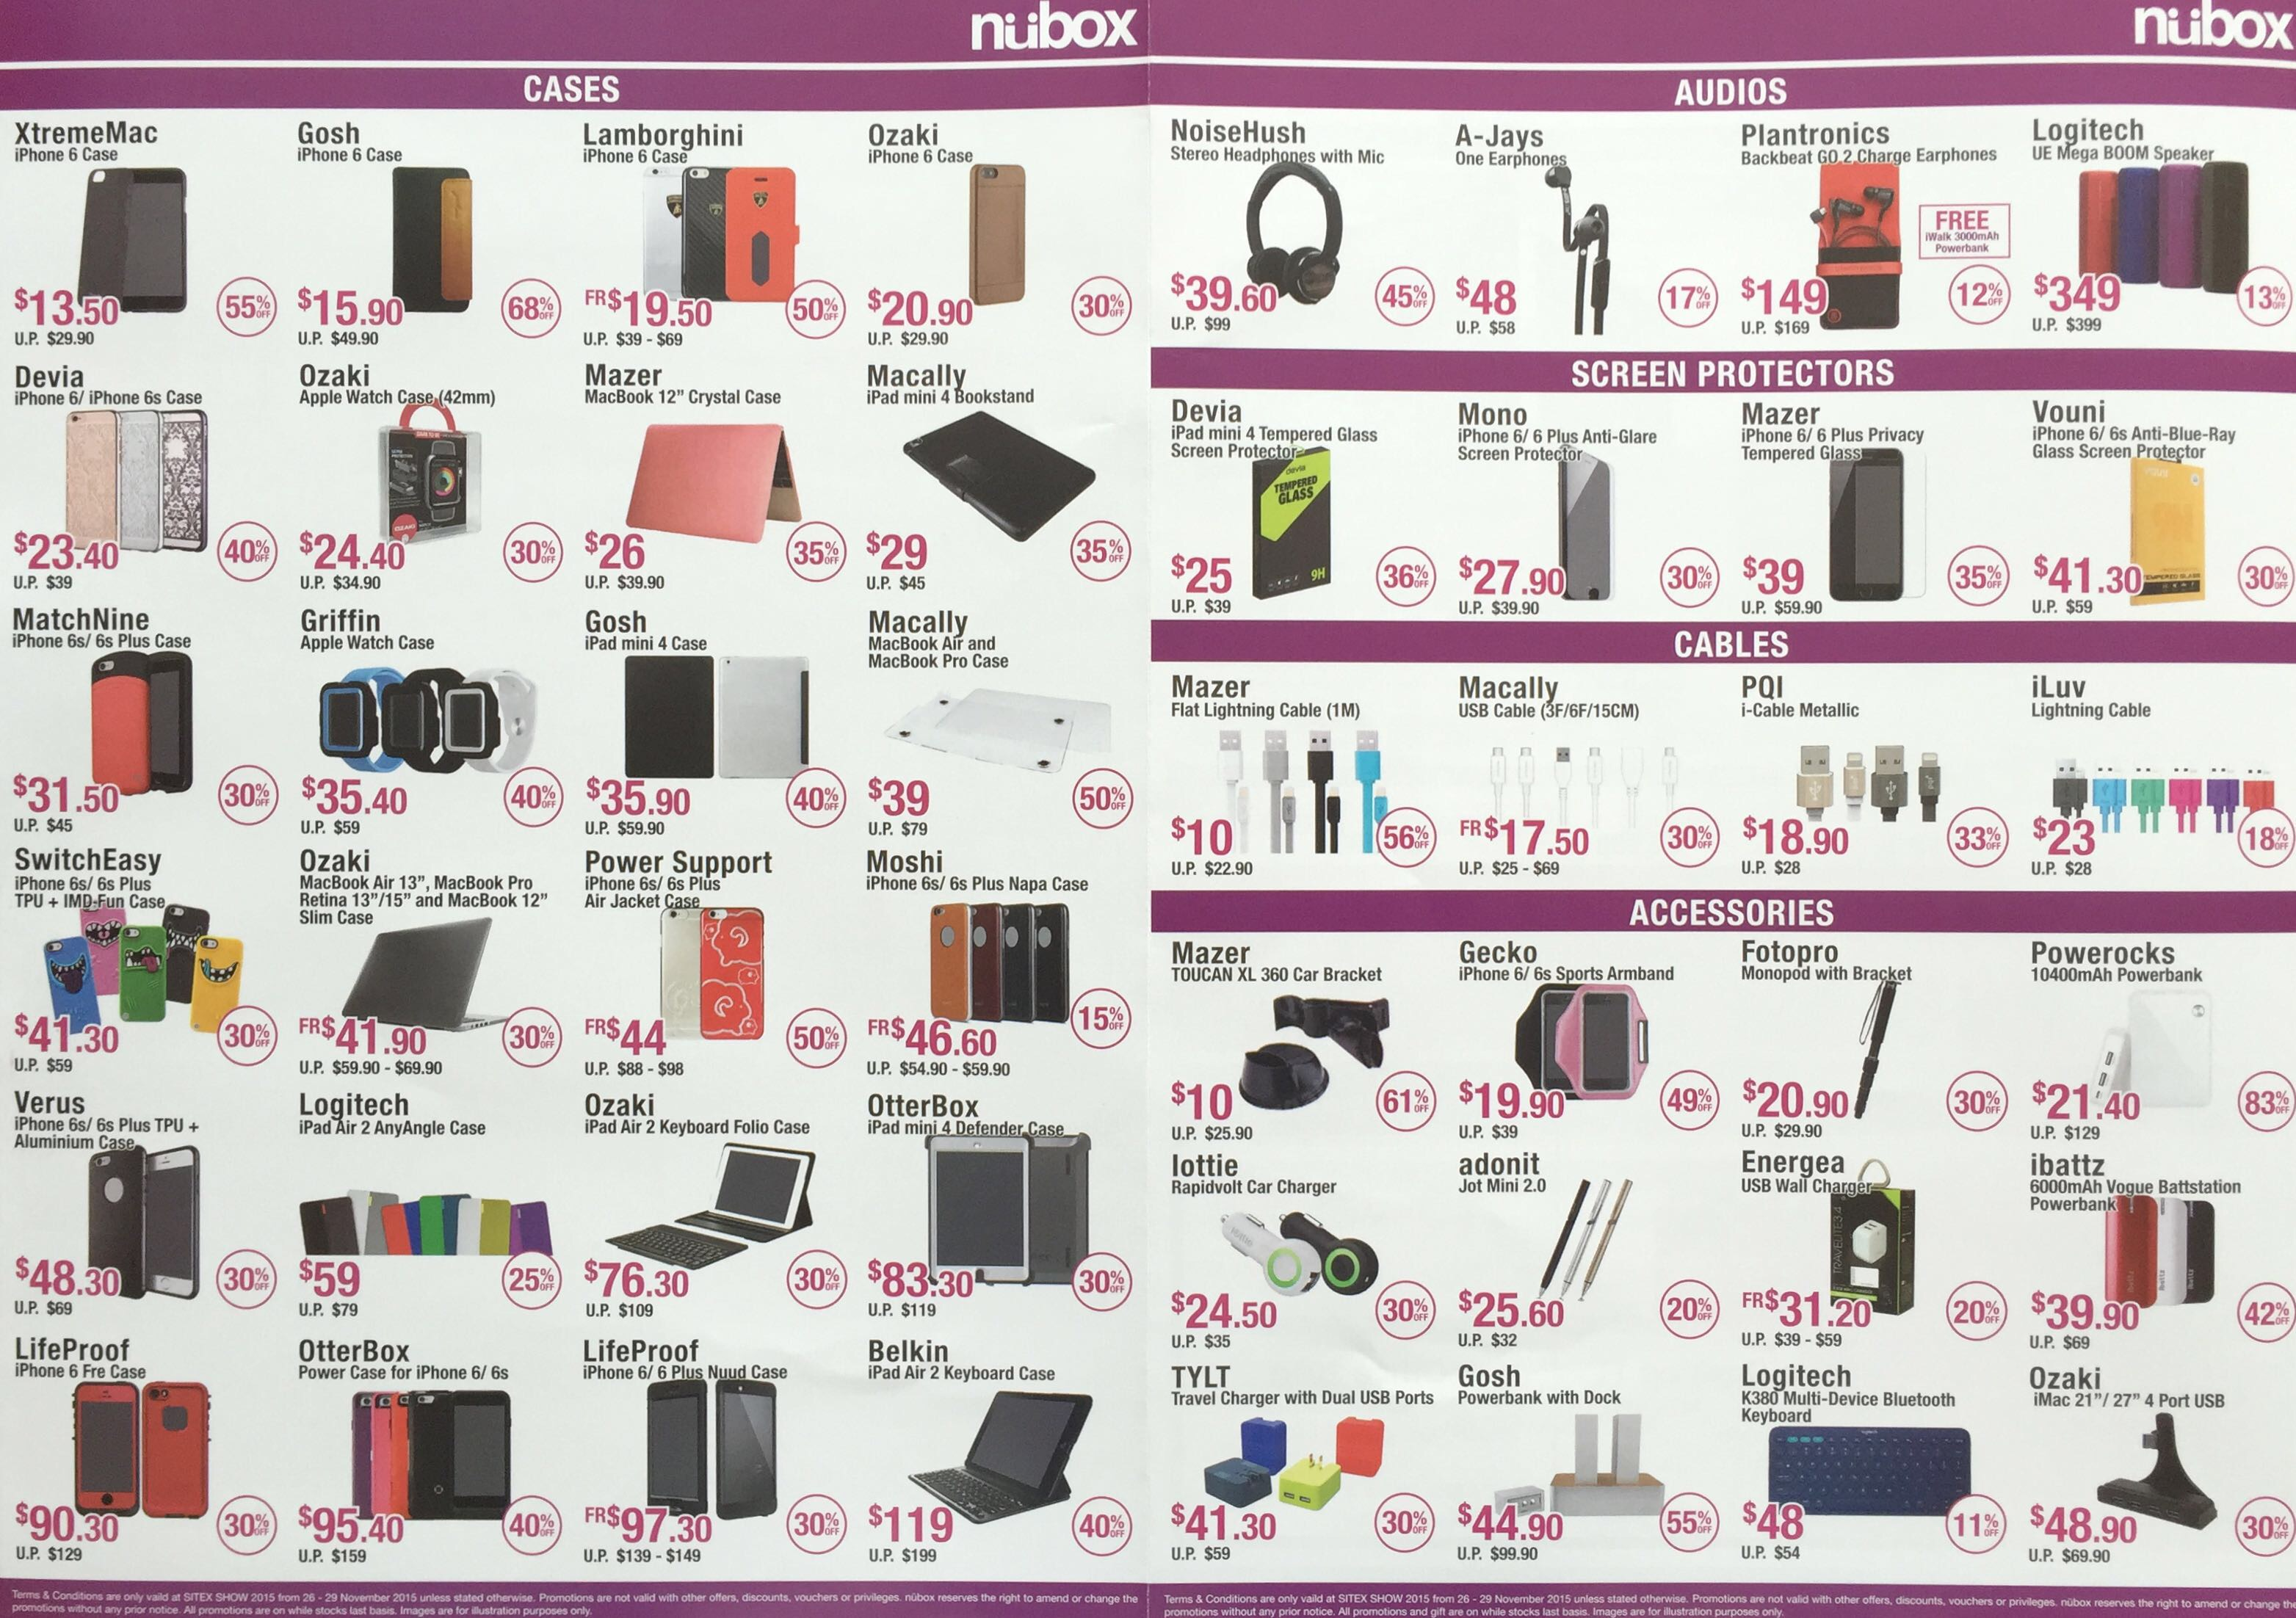 NUBOX @ SITEX 2015 - Cases and Accessories